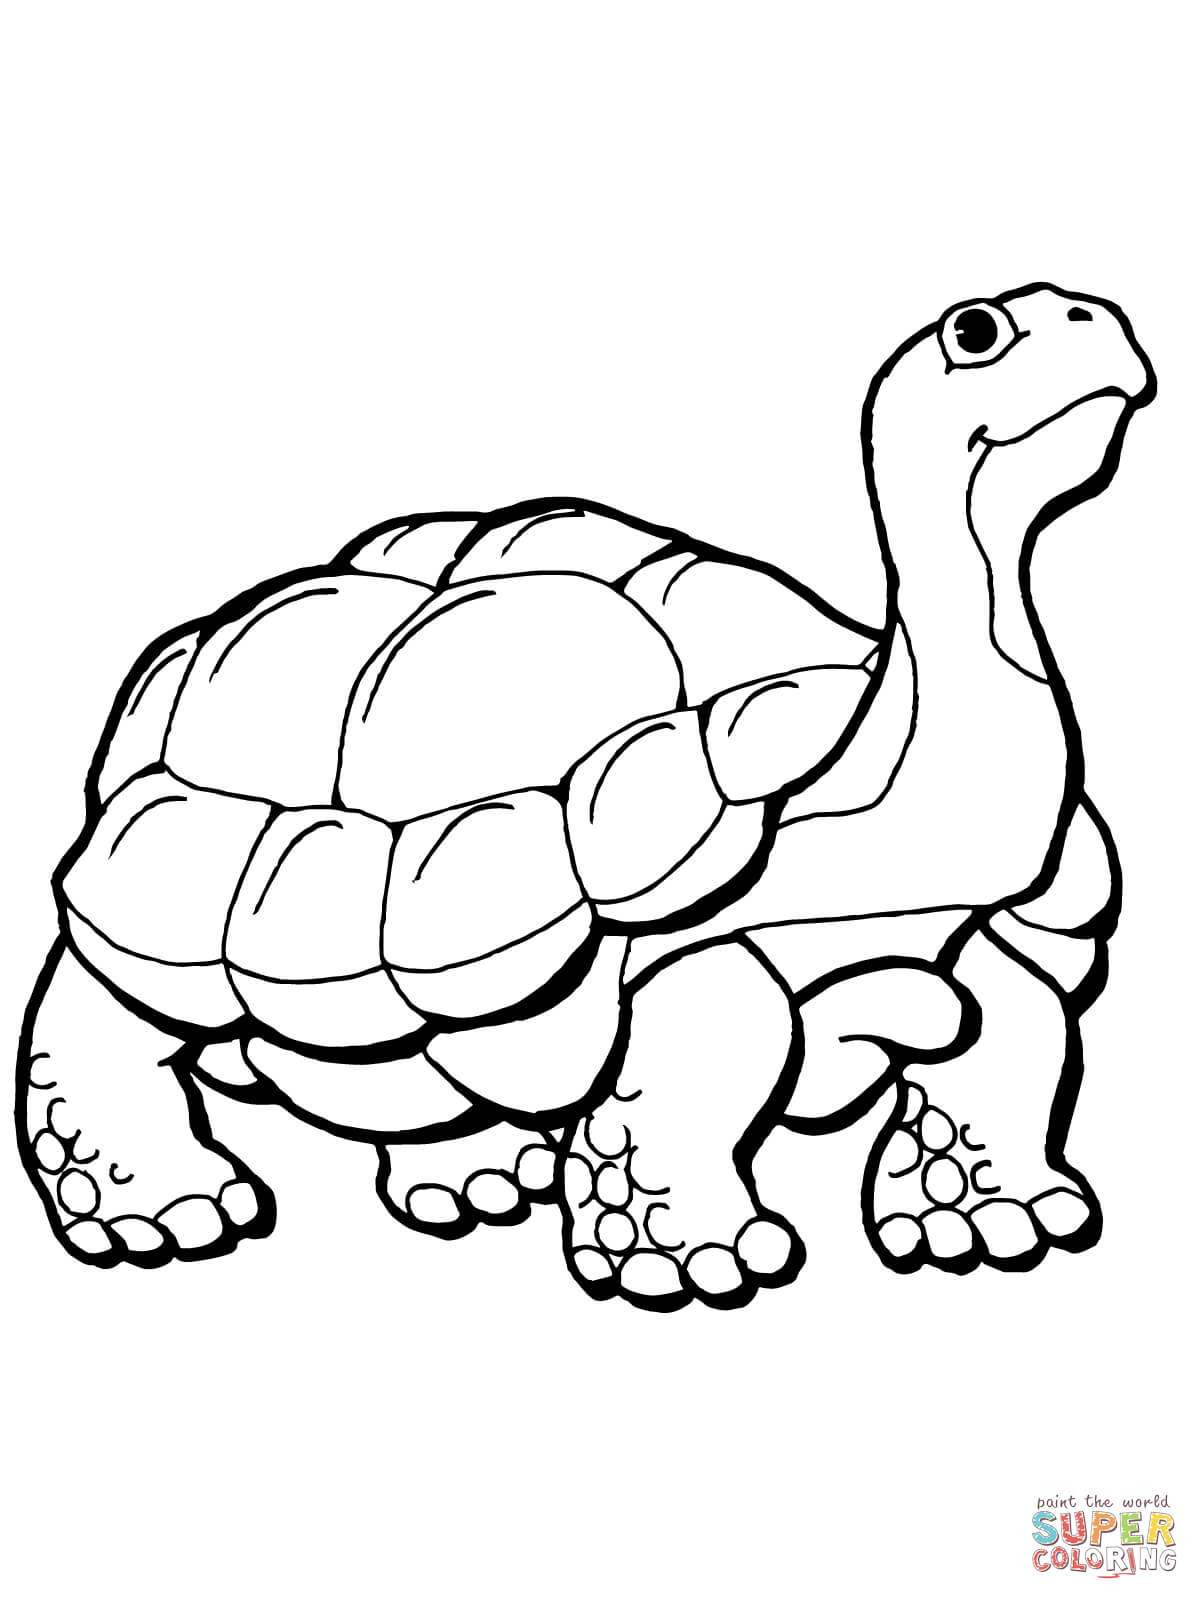 Tortoise clipart coloring page #1